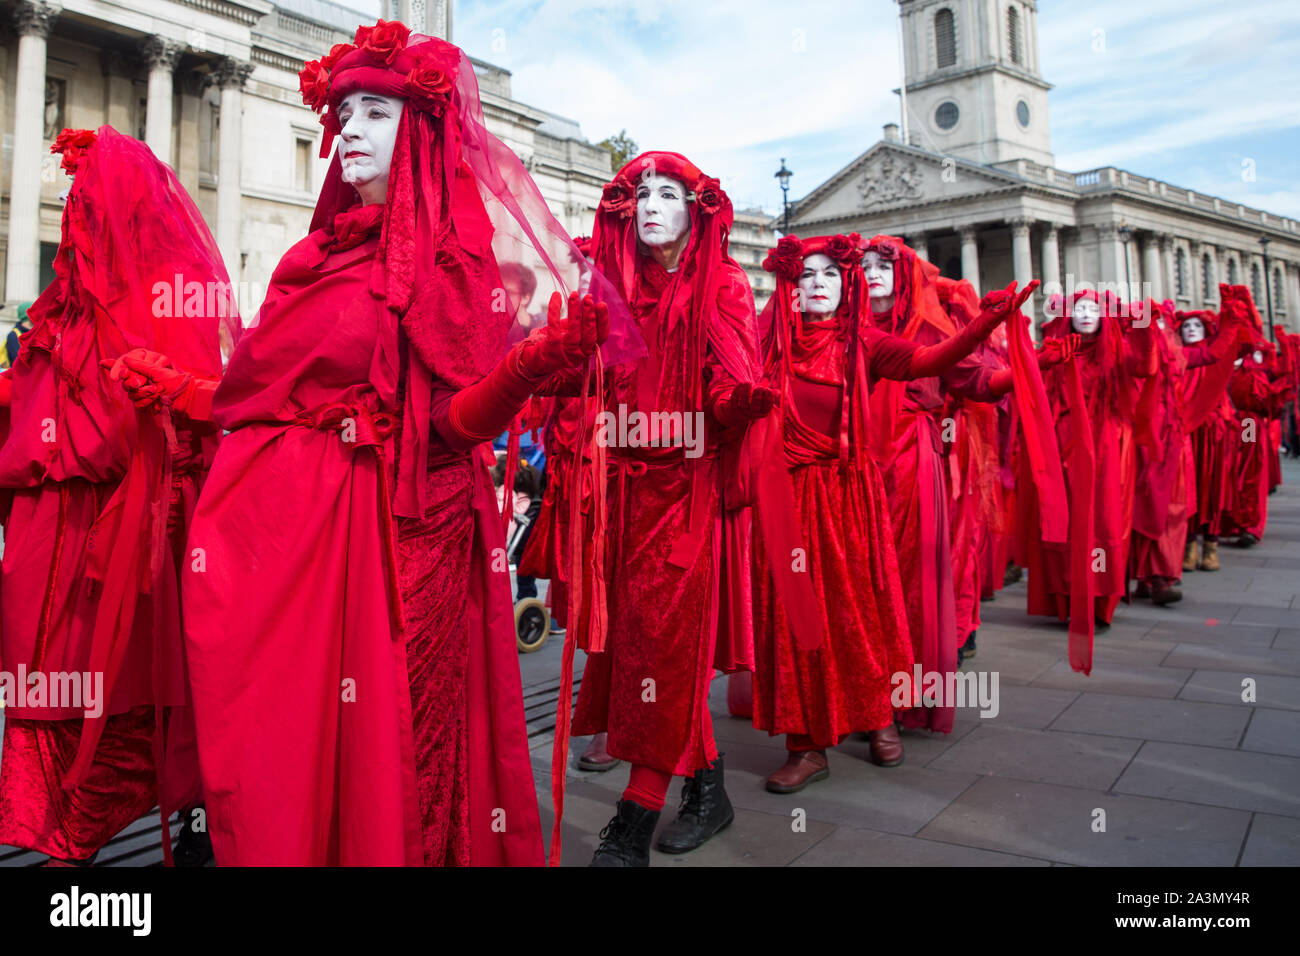 London, UK. 9 October, 2019. Climate activists from the Extinction Rebellion Red Brigade gather in Trafalgar Square on the third day of International Rebellion protests to demand a government declaration of a climate and ecological emergency, a commitment to halting biodiversity loss and net zero carbon emissions by 2025 and for the government to create and be led by the decisions of a Citizens' Assembly on climate and ecological justice. Credit: Mark Kerrison/Alamy Live News Stock Photo